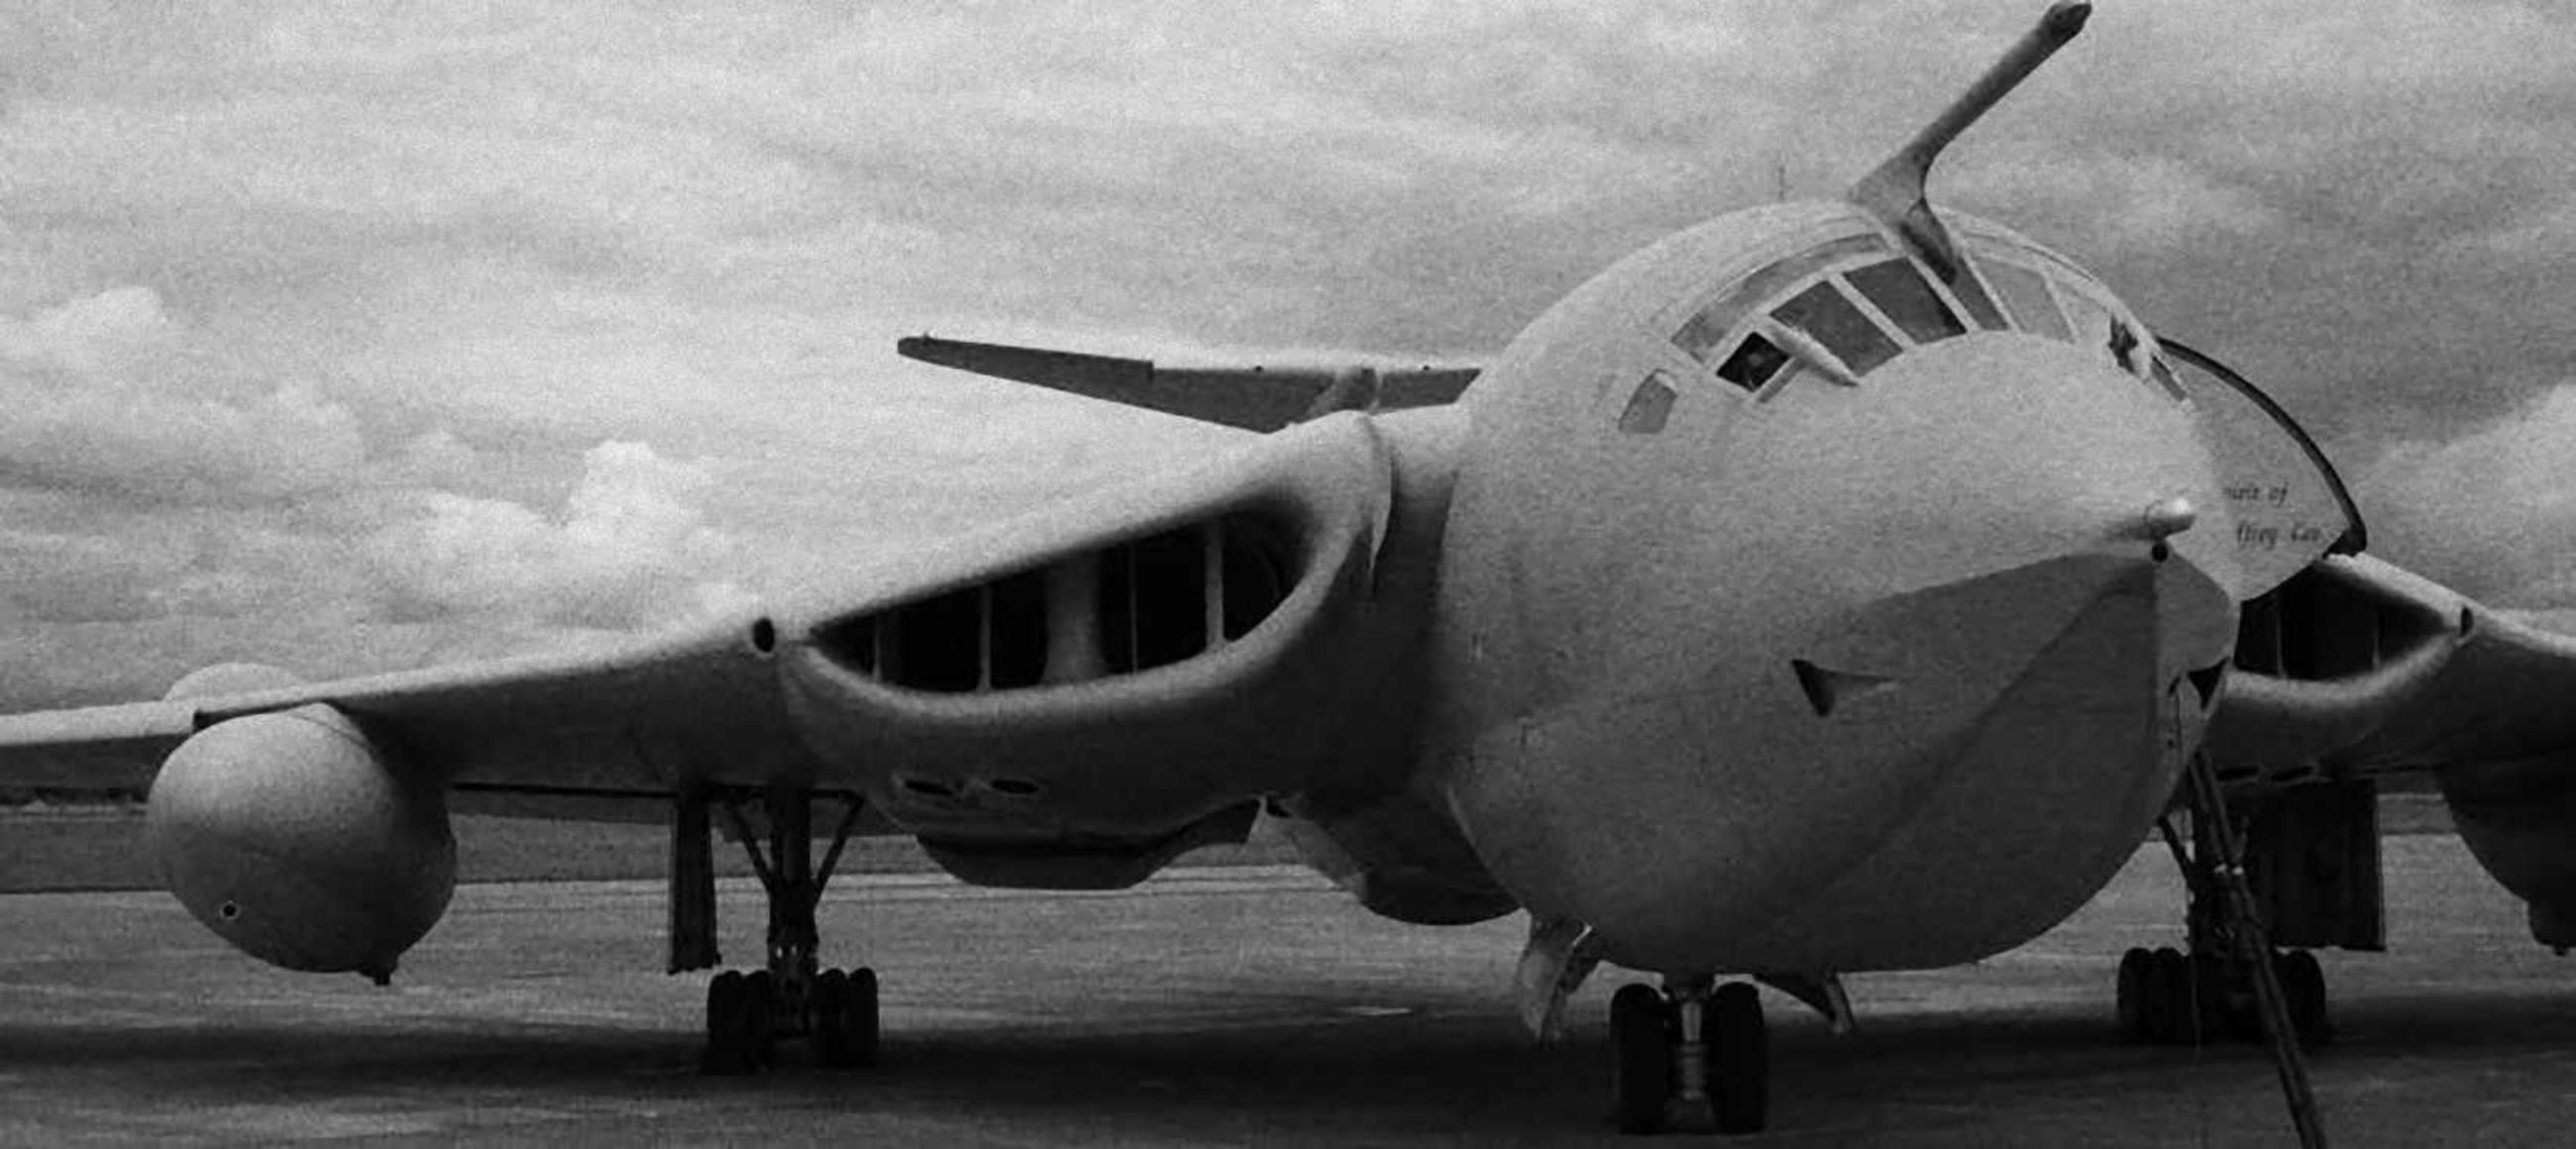 The Handley Page Victor Bomber